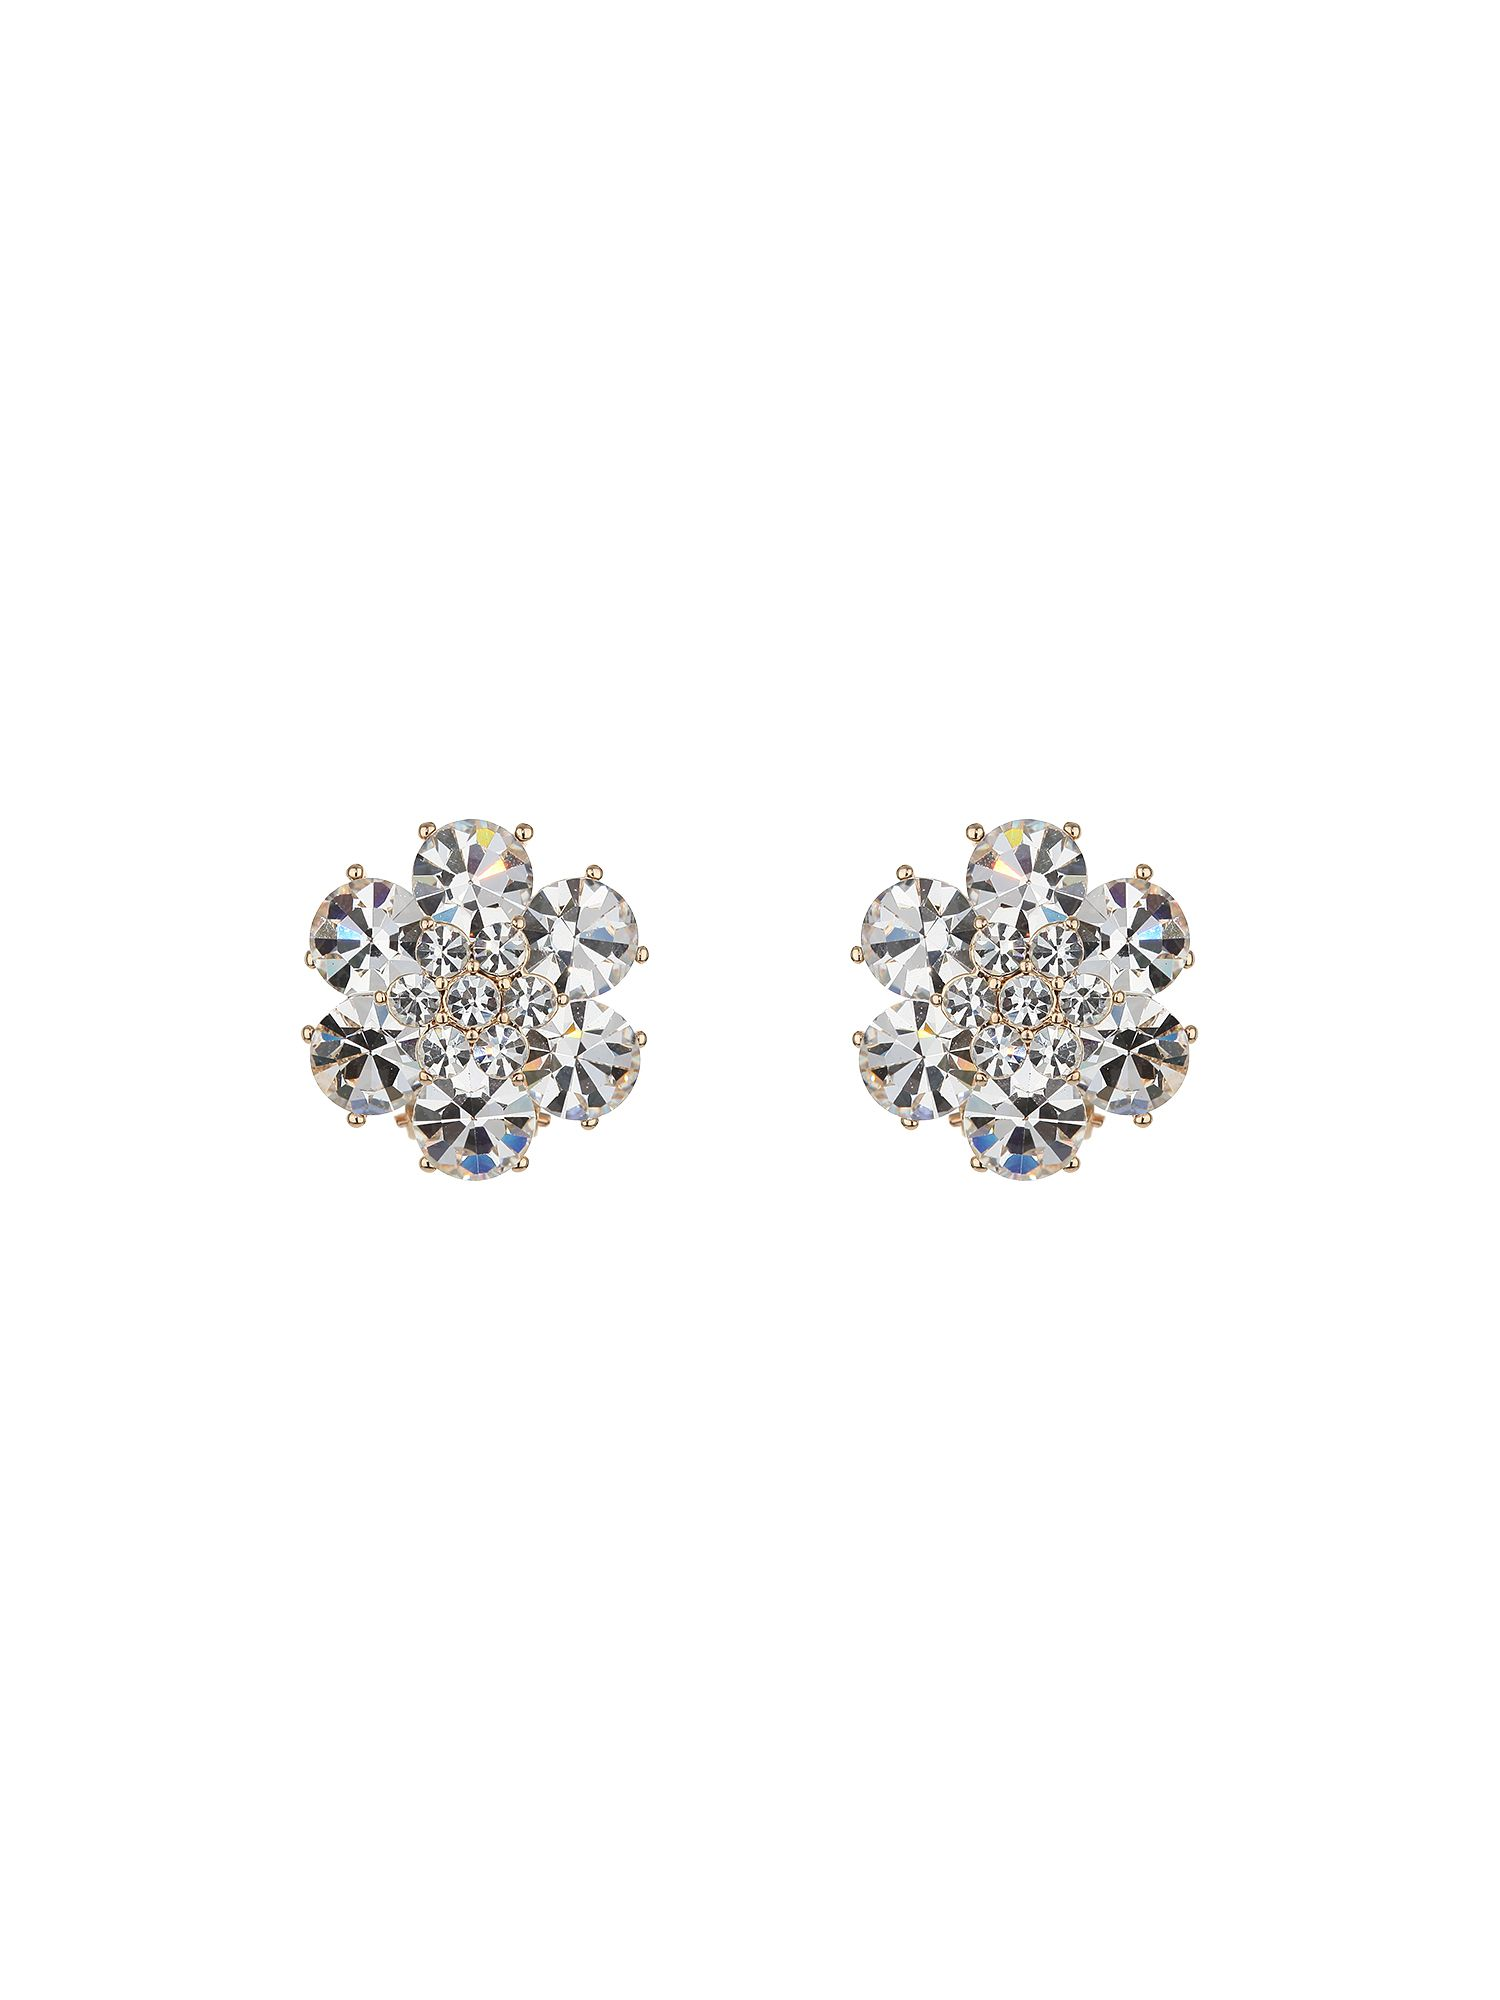 Daisy design stud earring